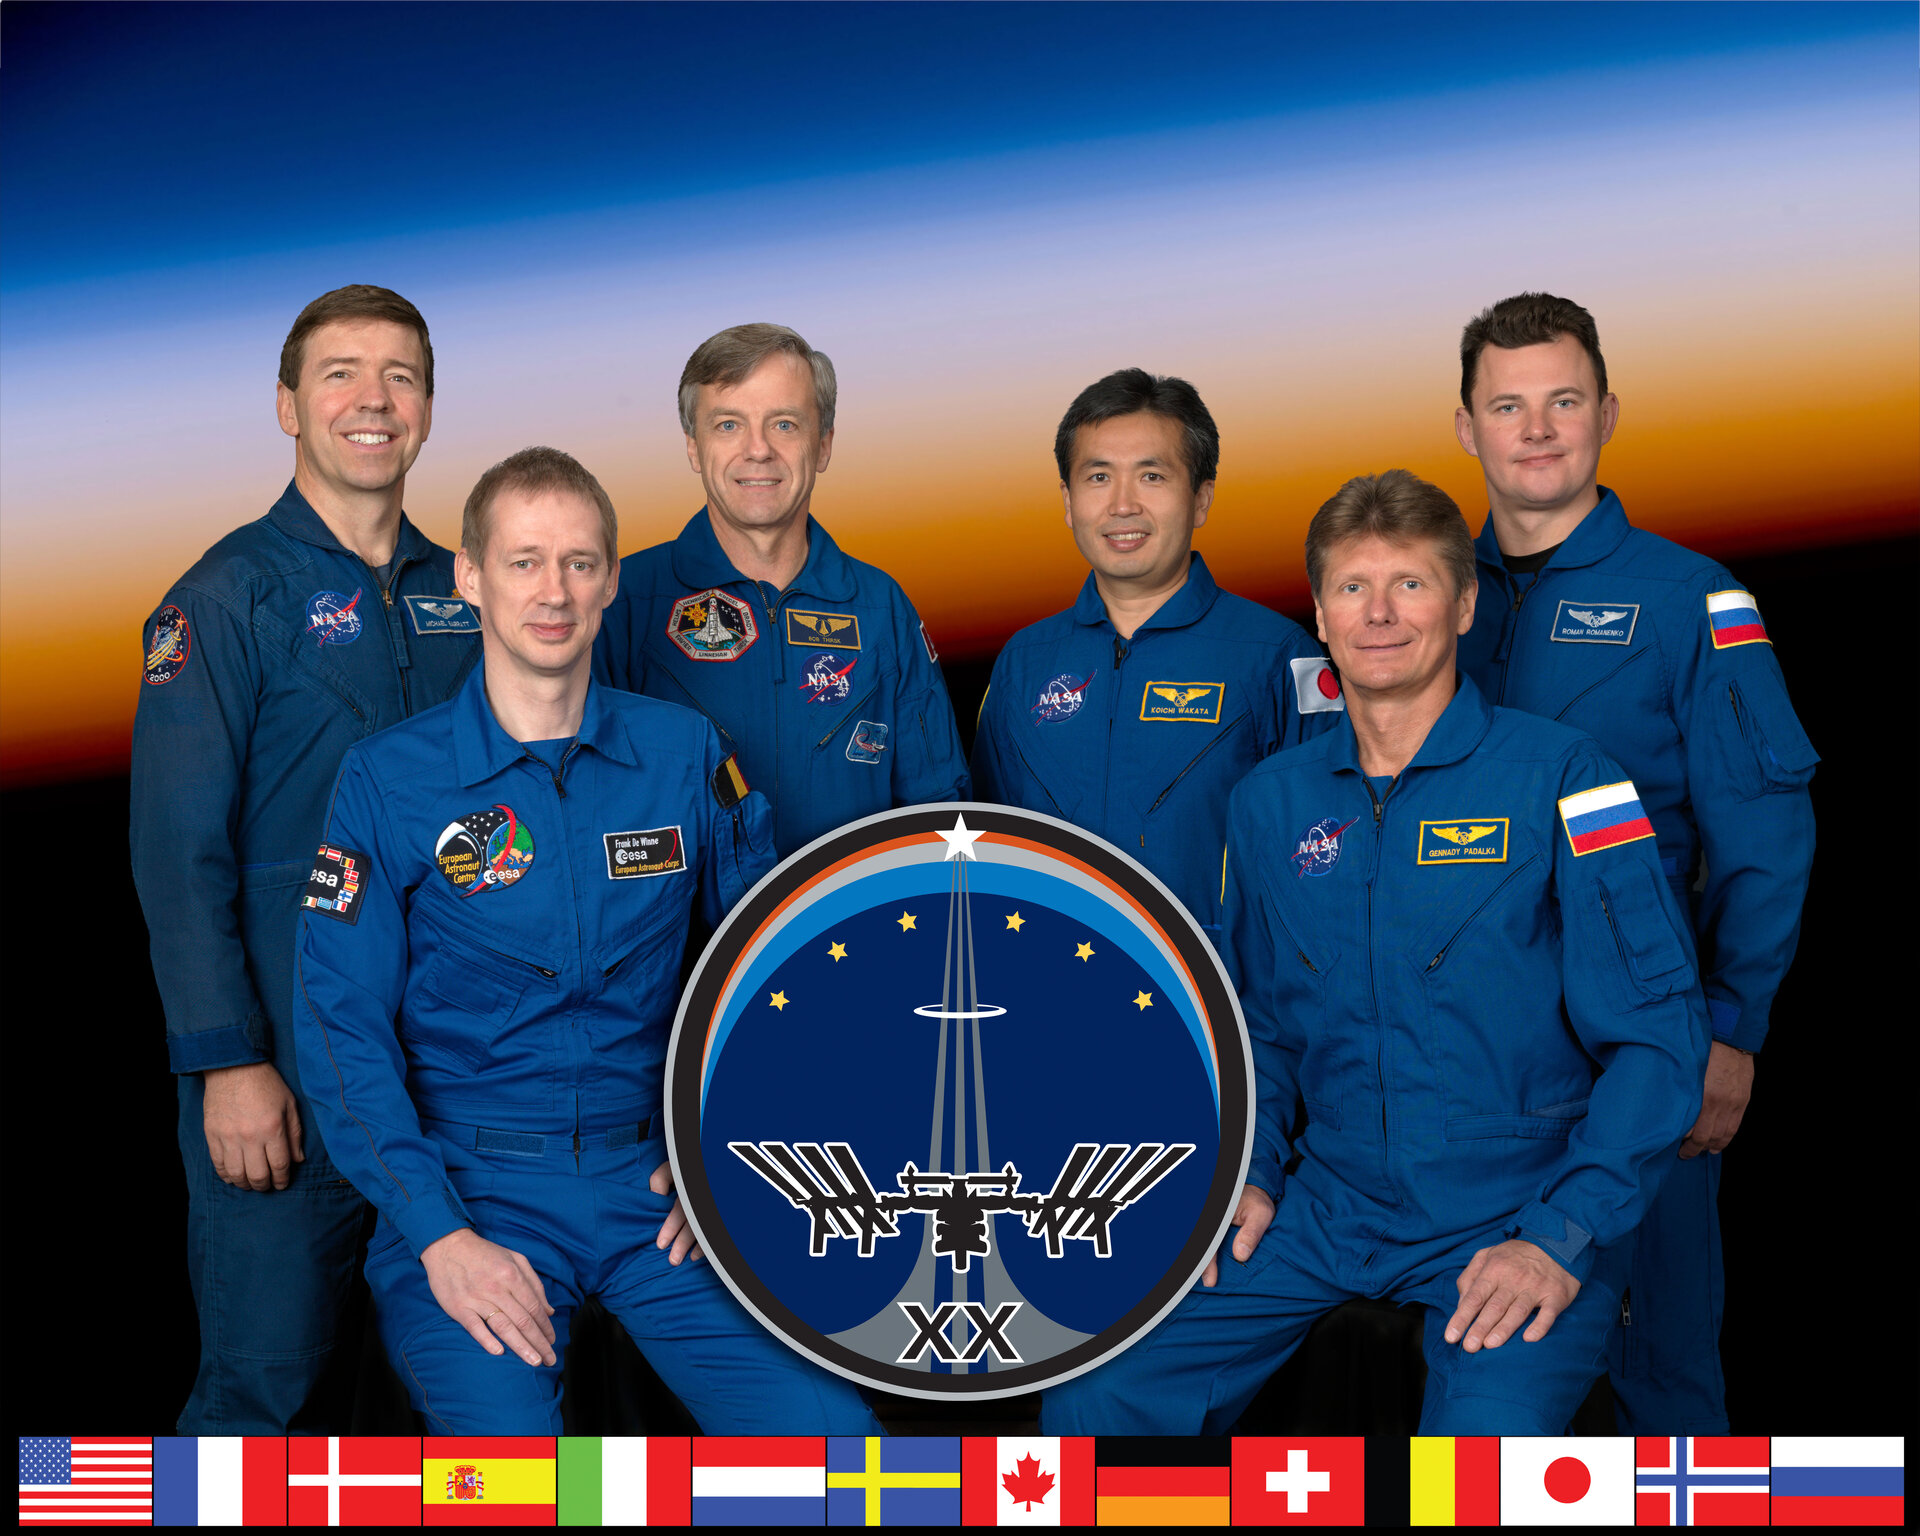 Expedition 20 crew